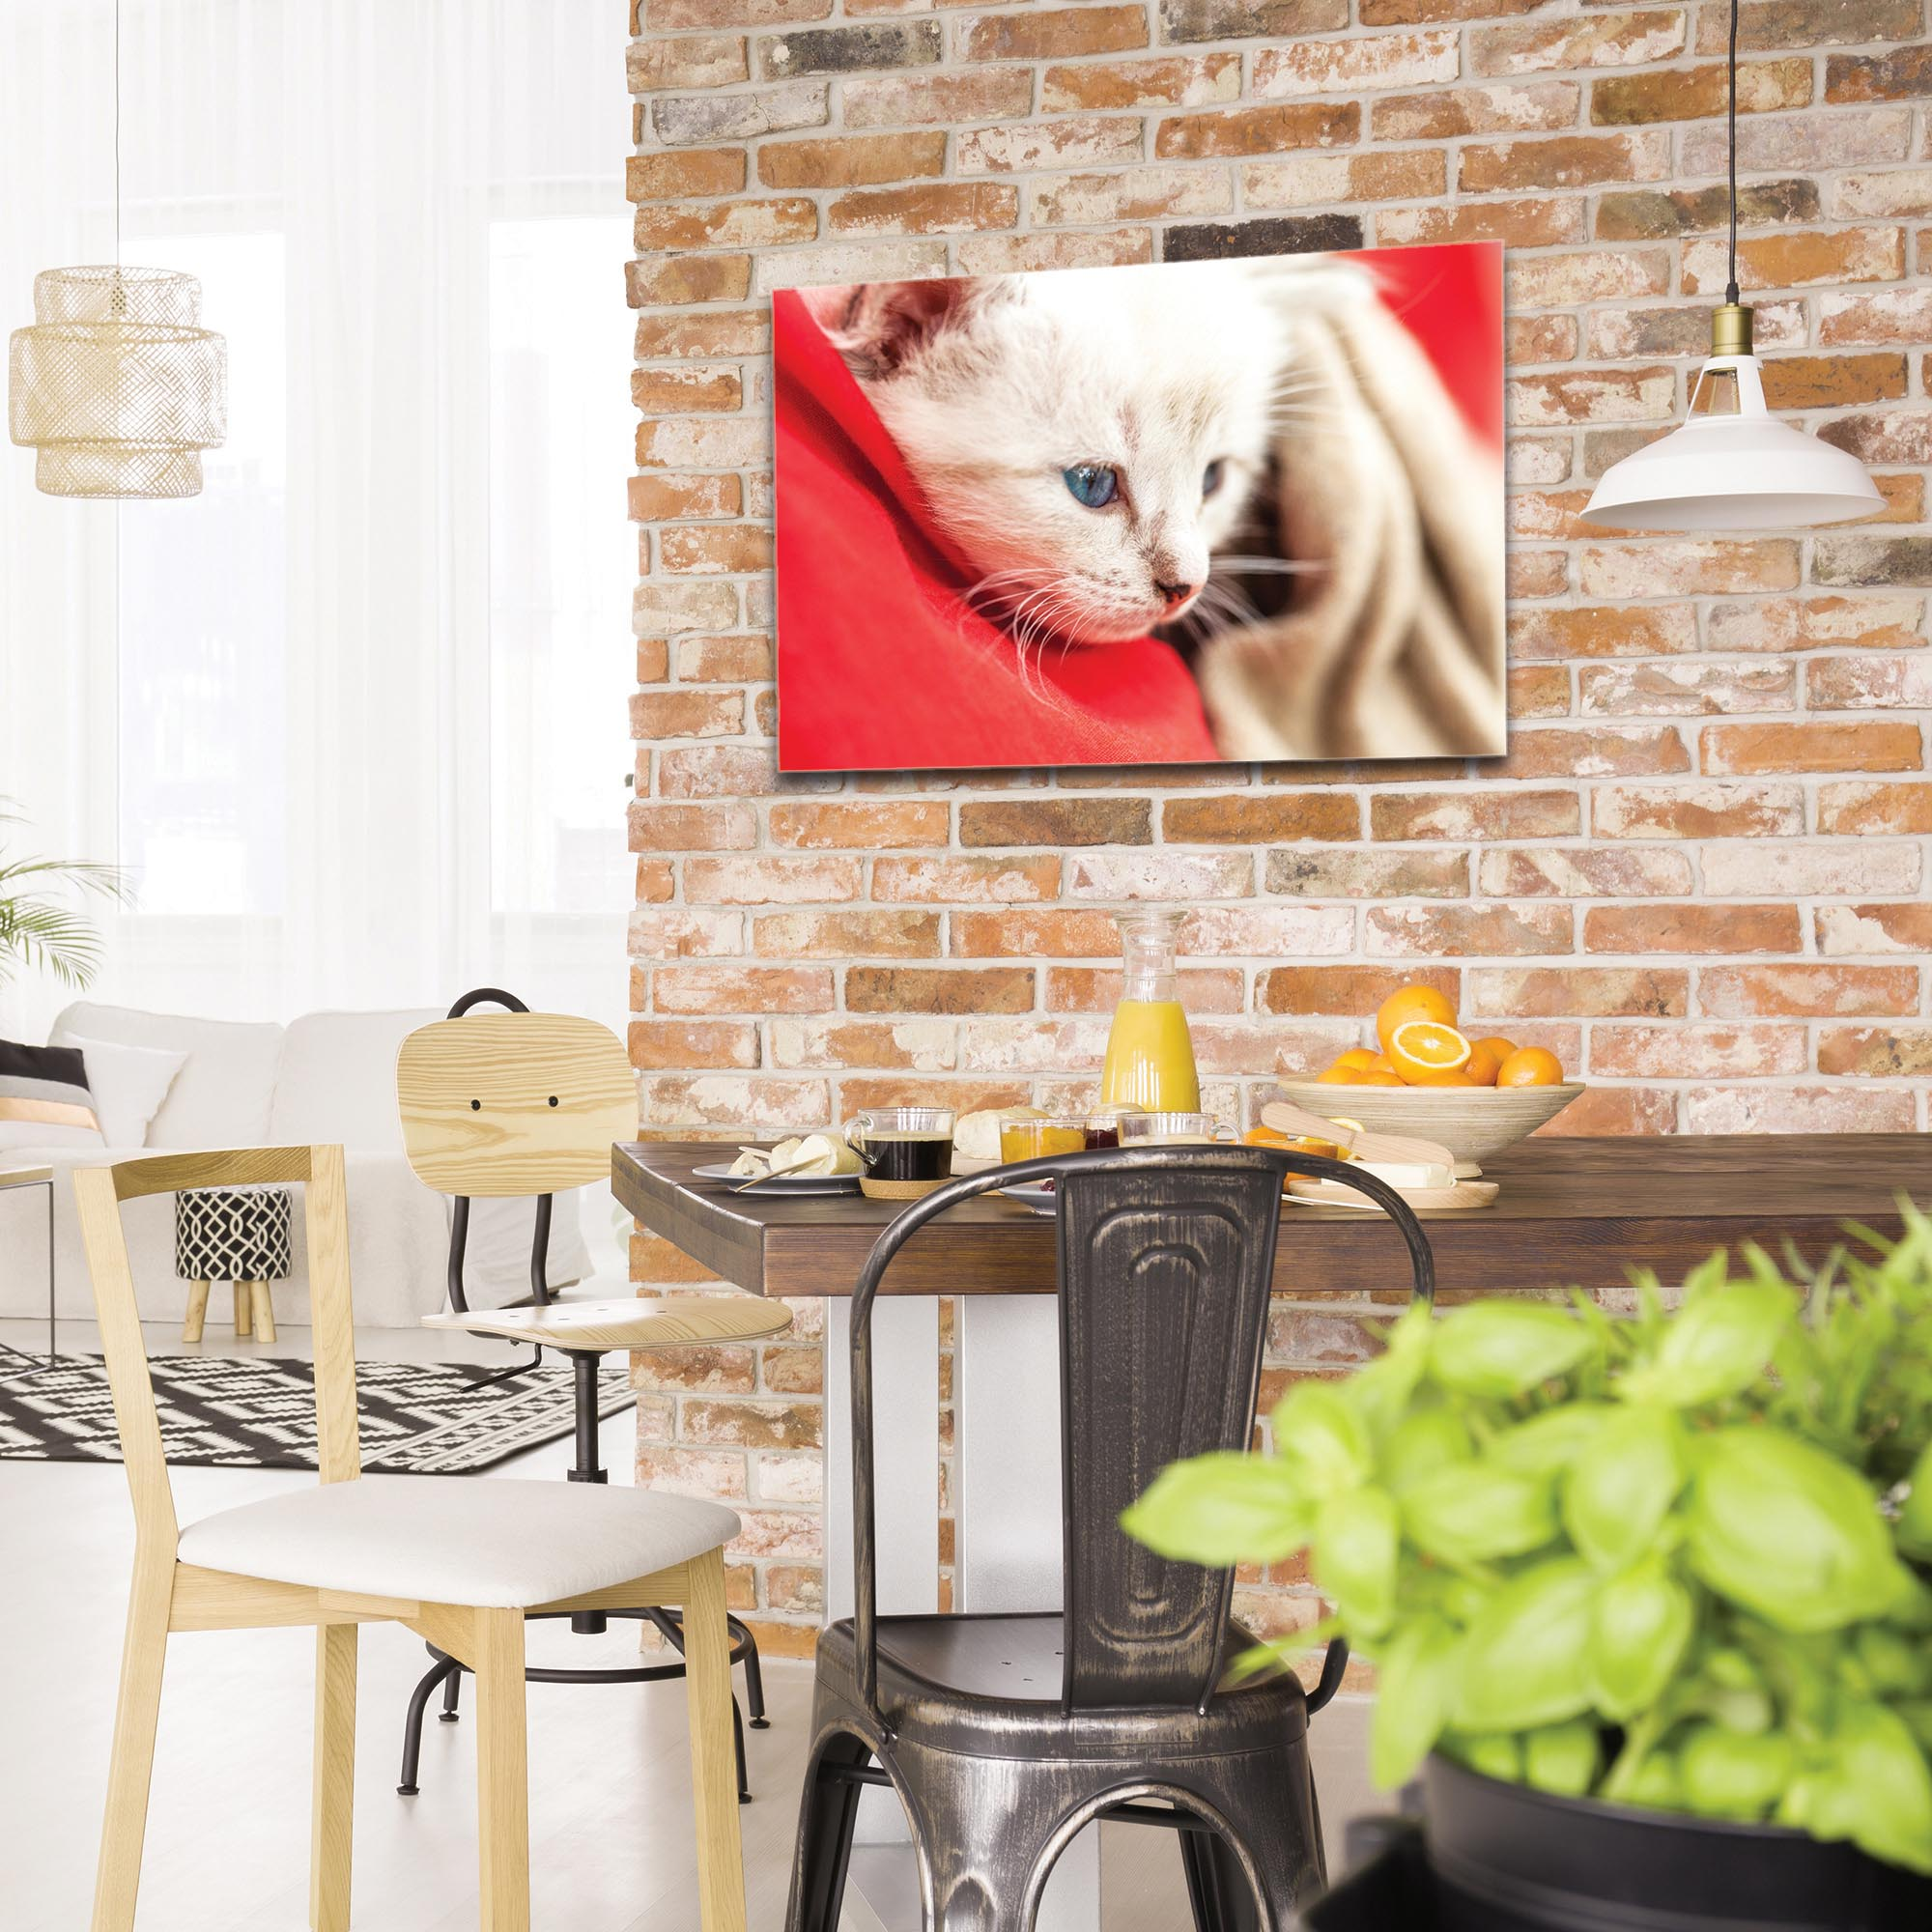 Casual Wall Art 'Bundled Kitten' - Wildlife Decor on Metal or Plexiglass - Image 3